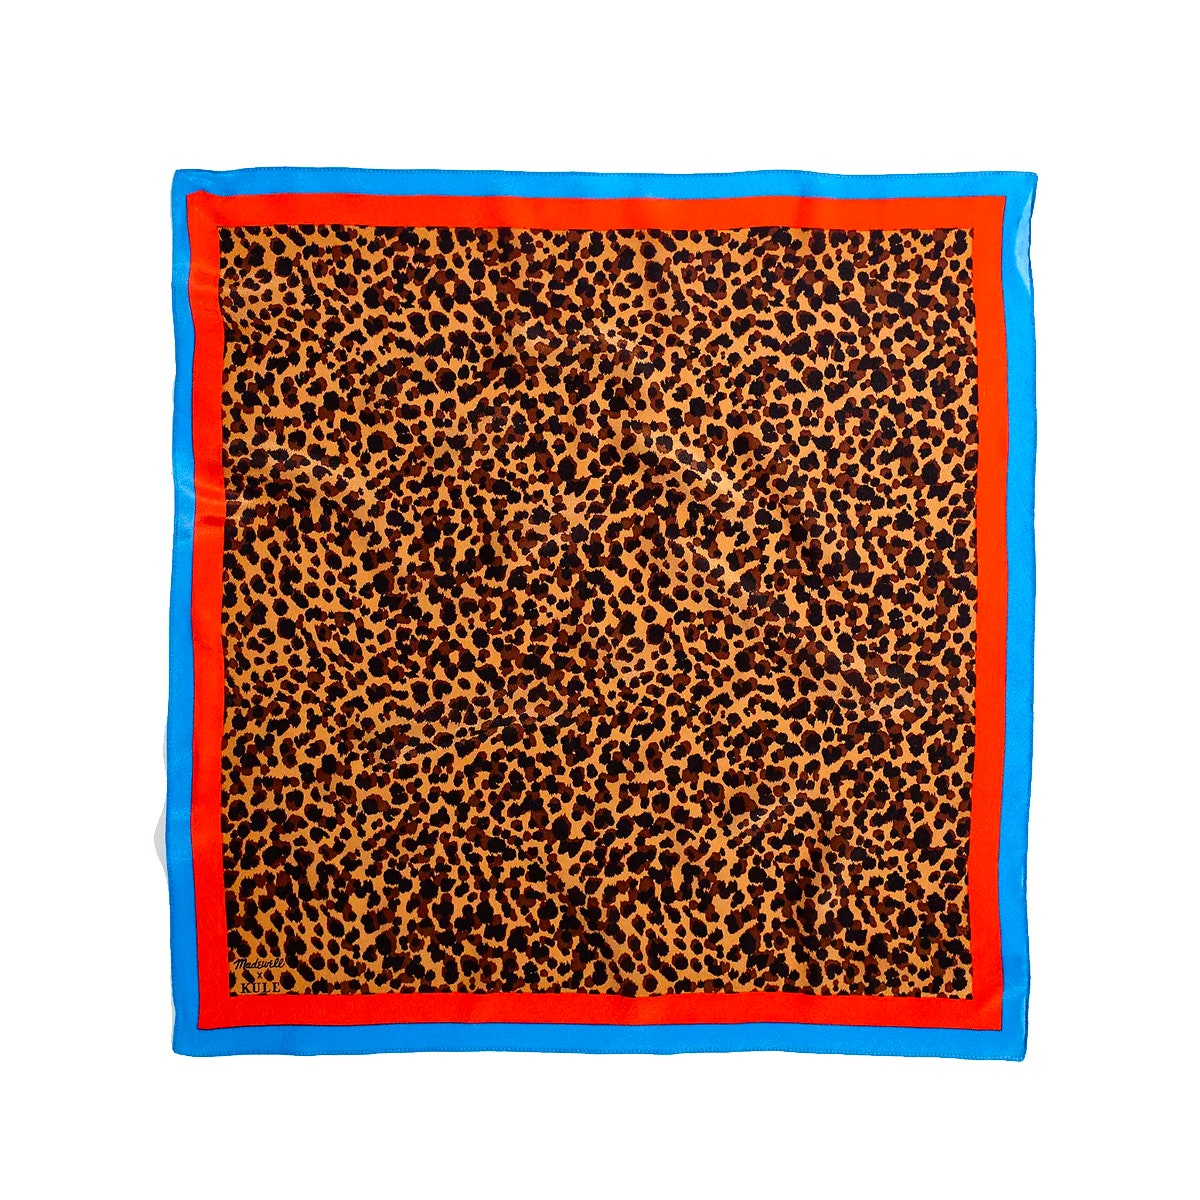 Leopard print scarf with red and blue lining